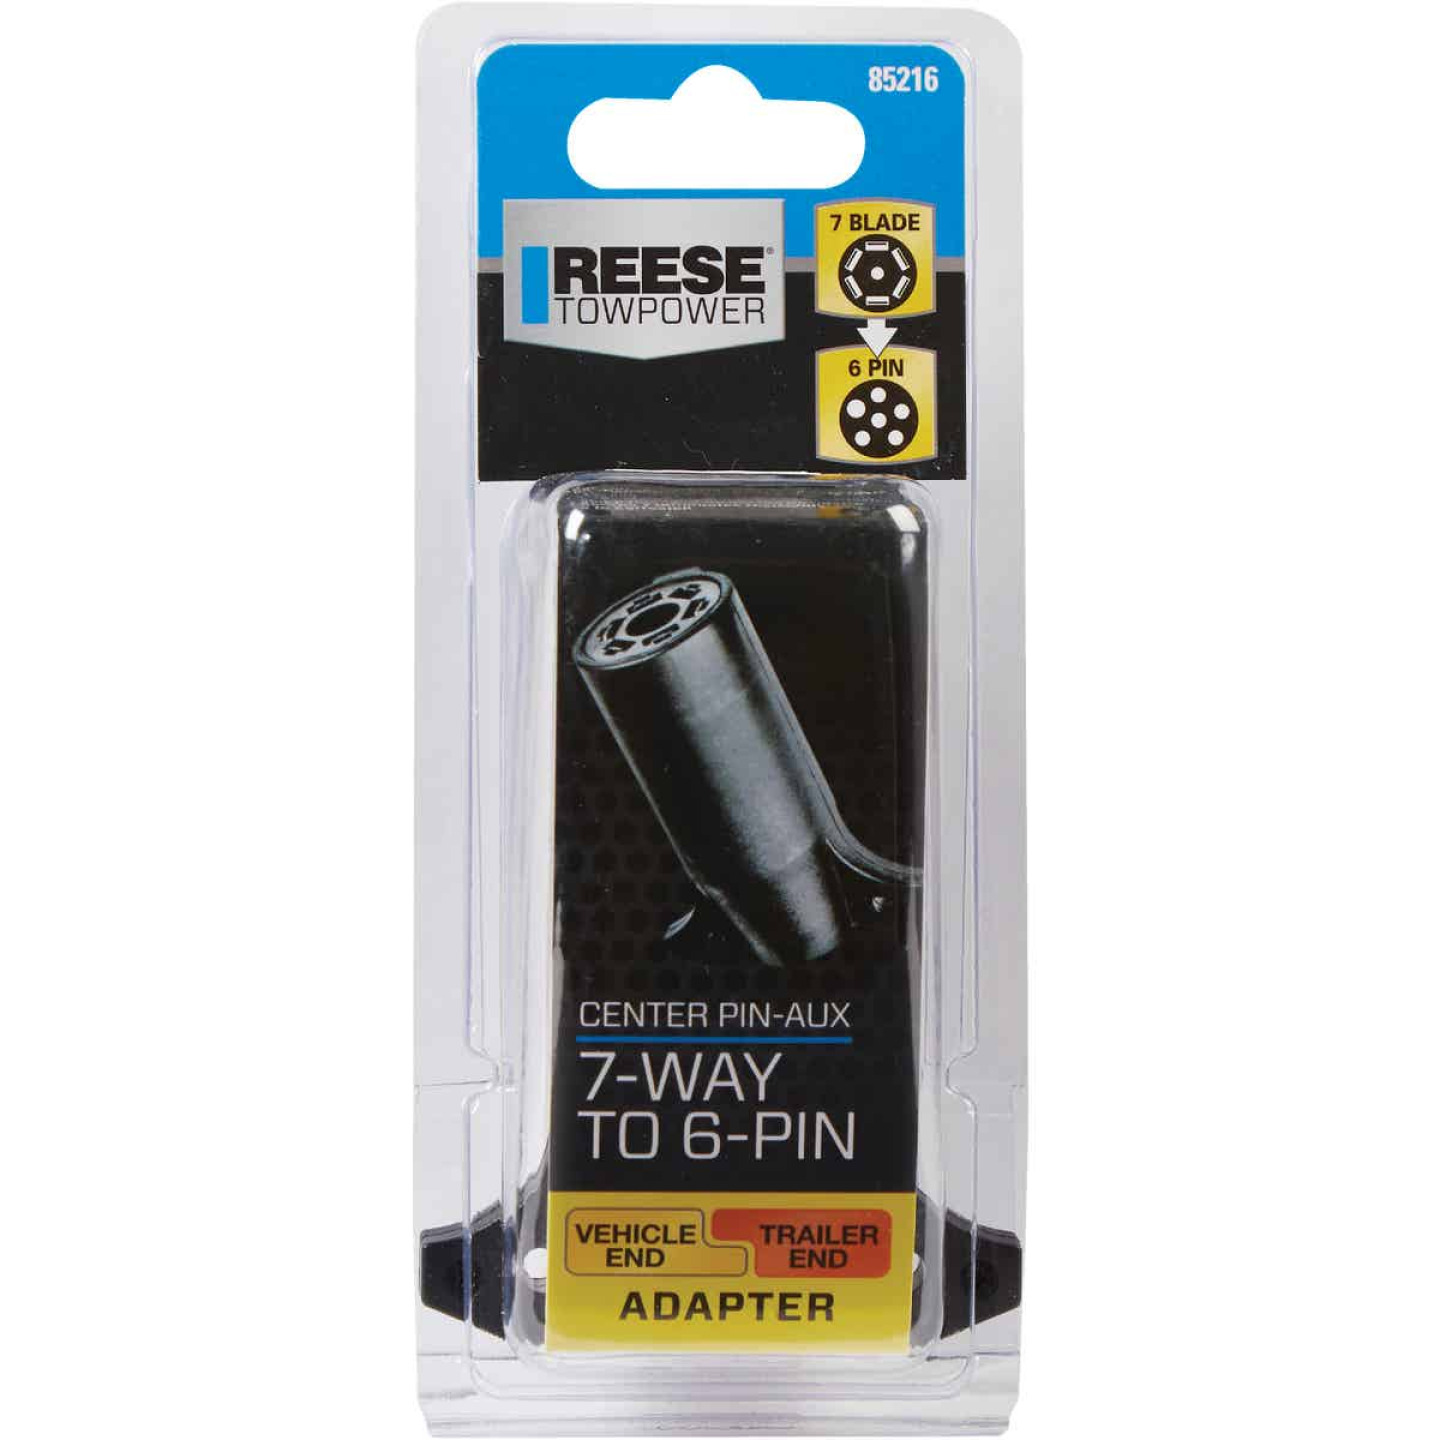 Reese Towpower 7-Blade to 6-Pin Center Pin Auxiliary Plug-In Adapter Image 2